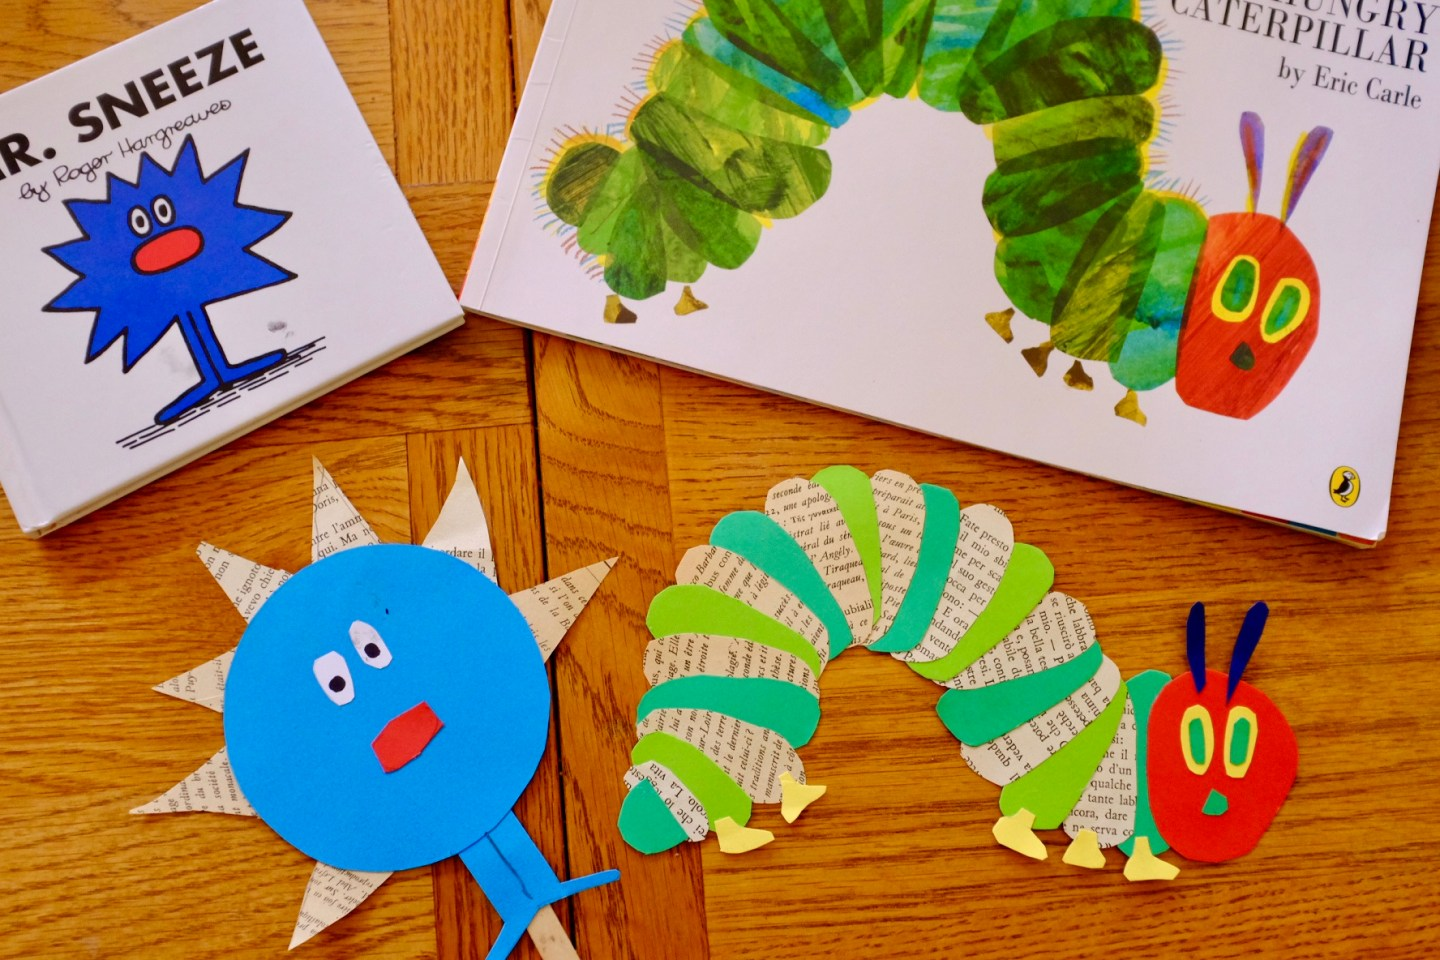 Book Crafts for World Book Day – Making Book Characters | AD